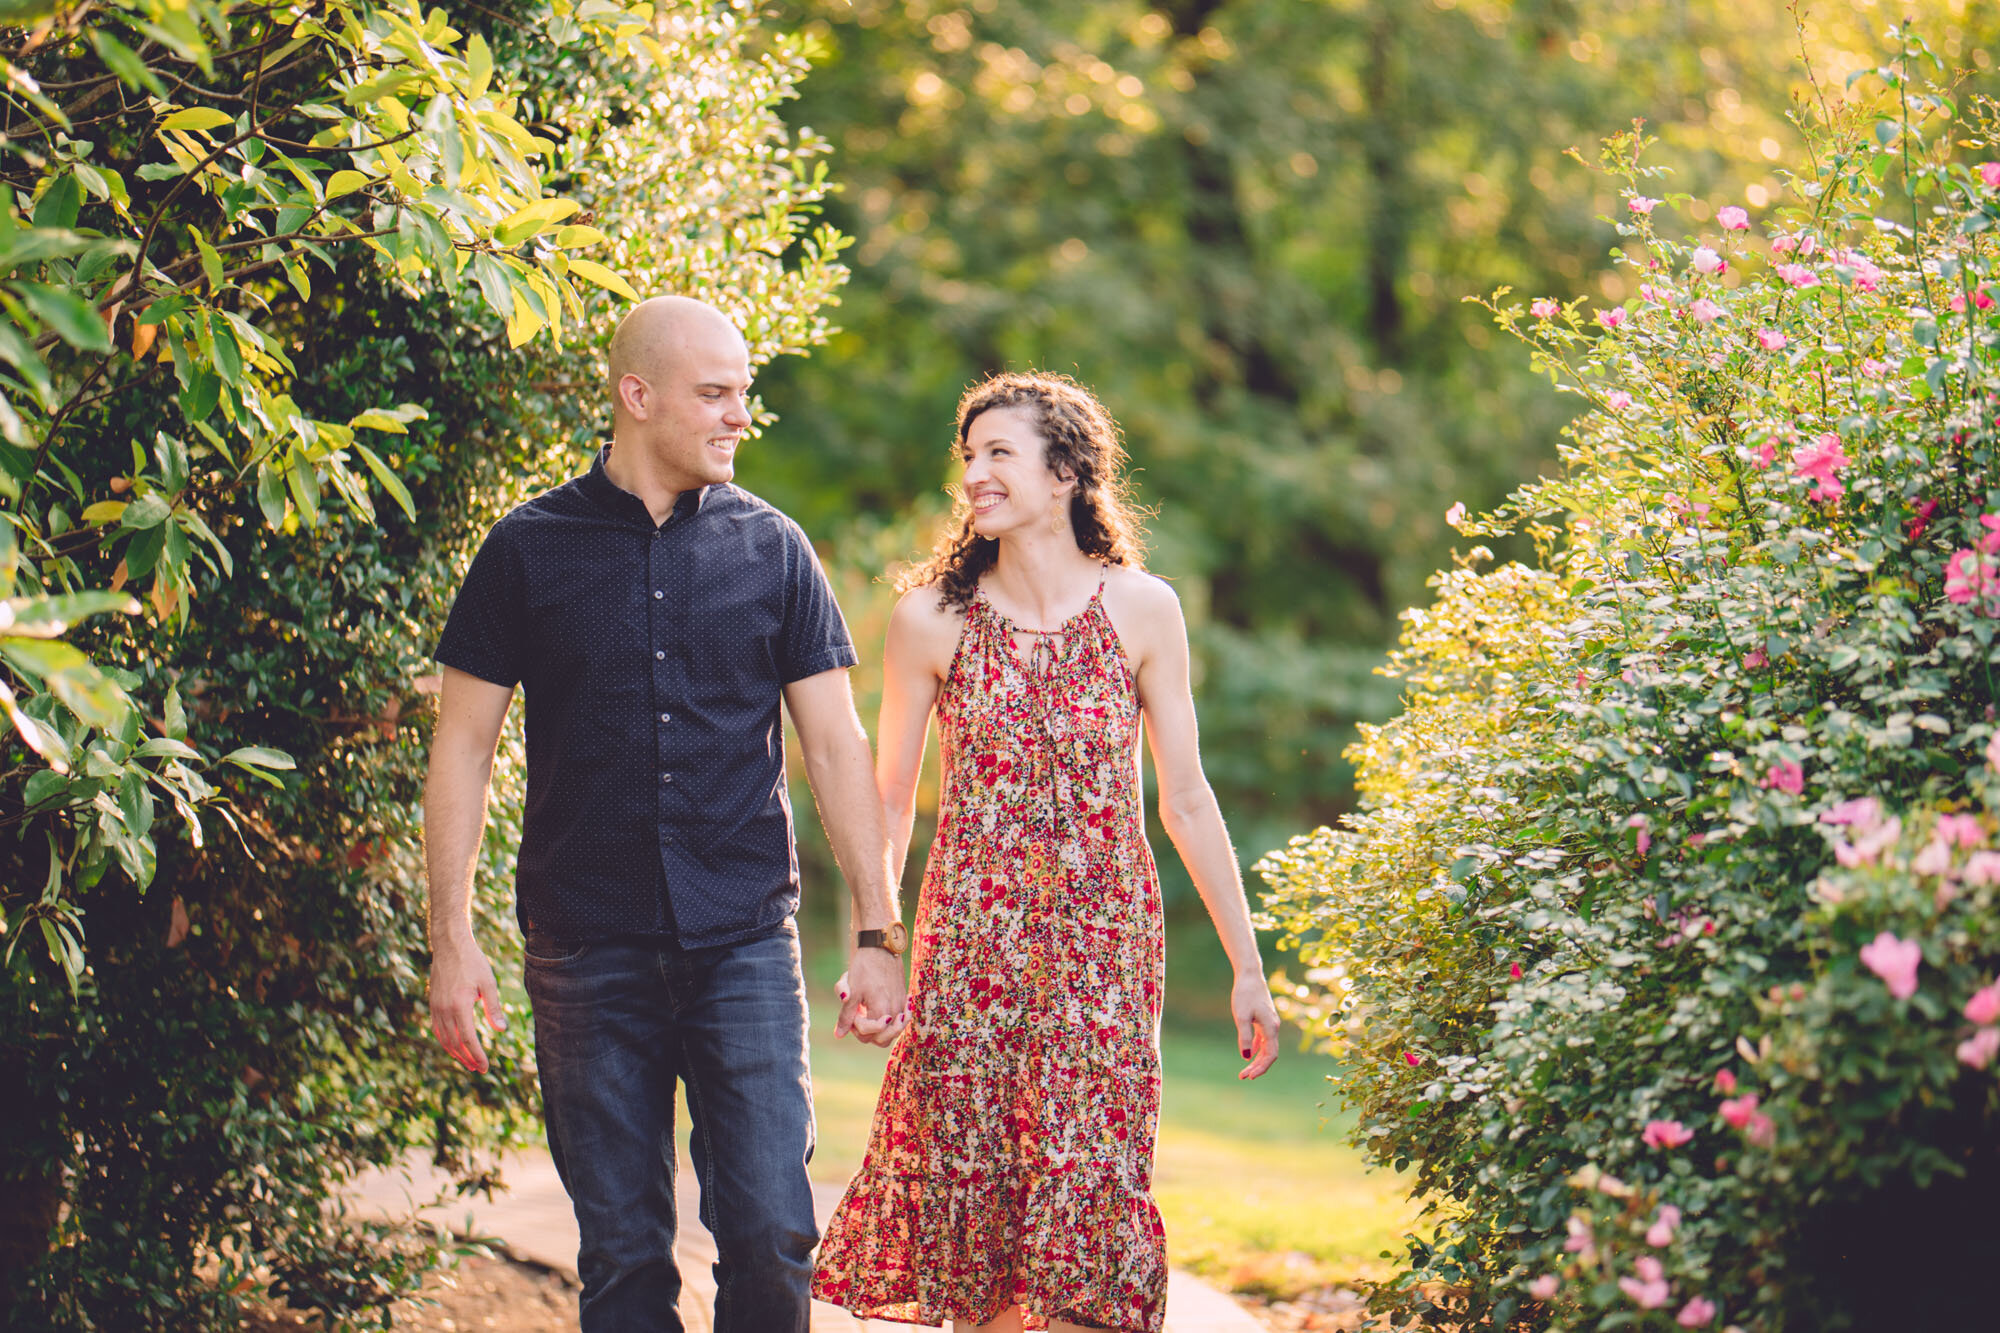 Bon Air Park Rose Garden Engagement Photos-4.jpg